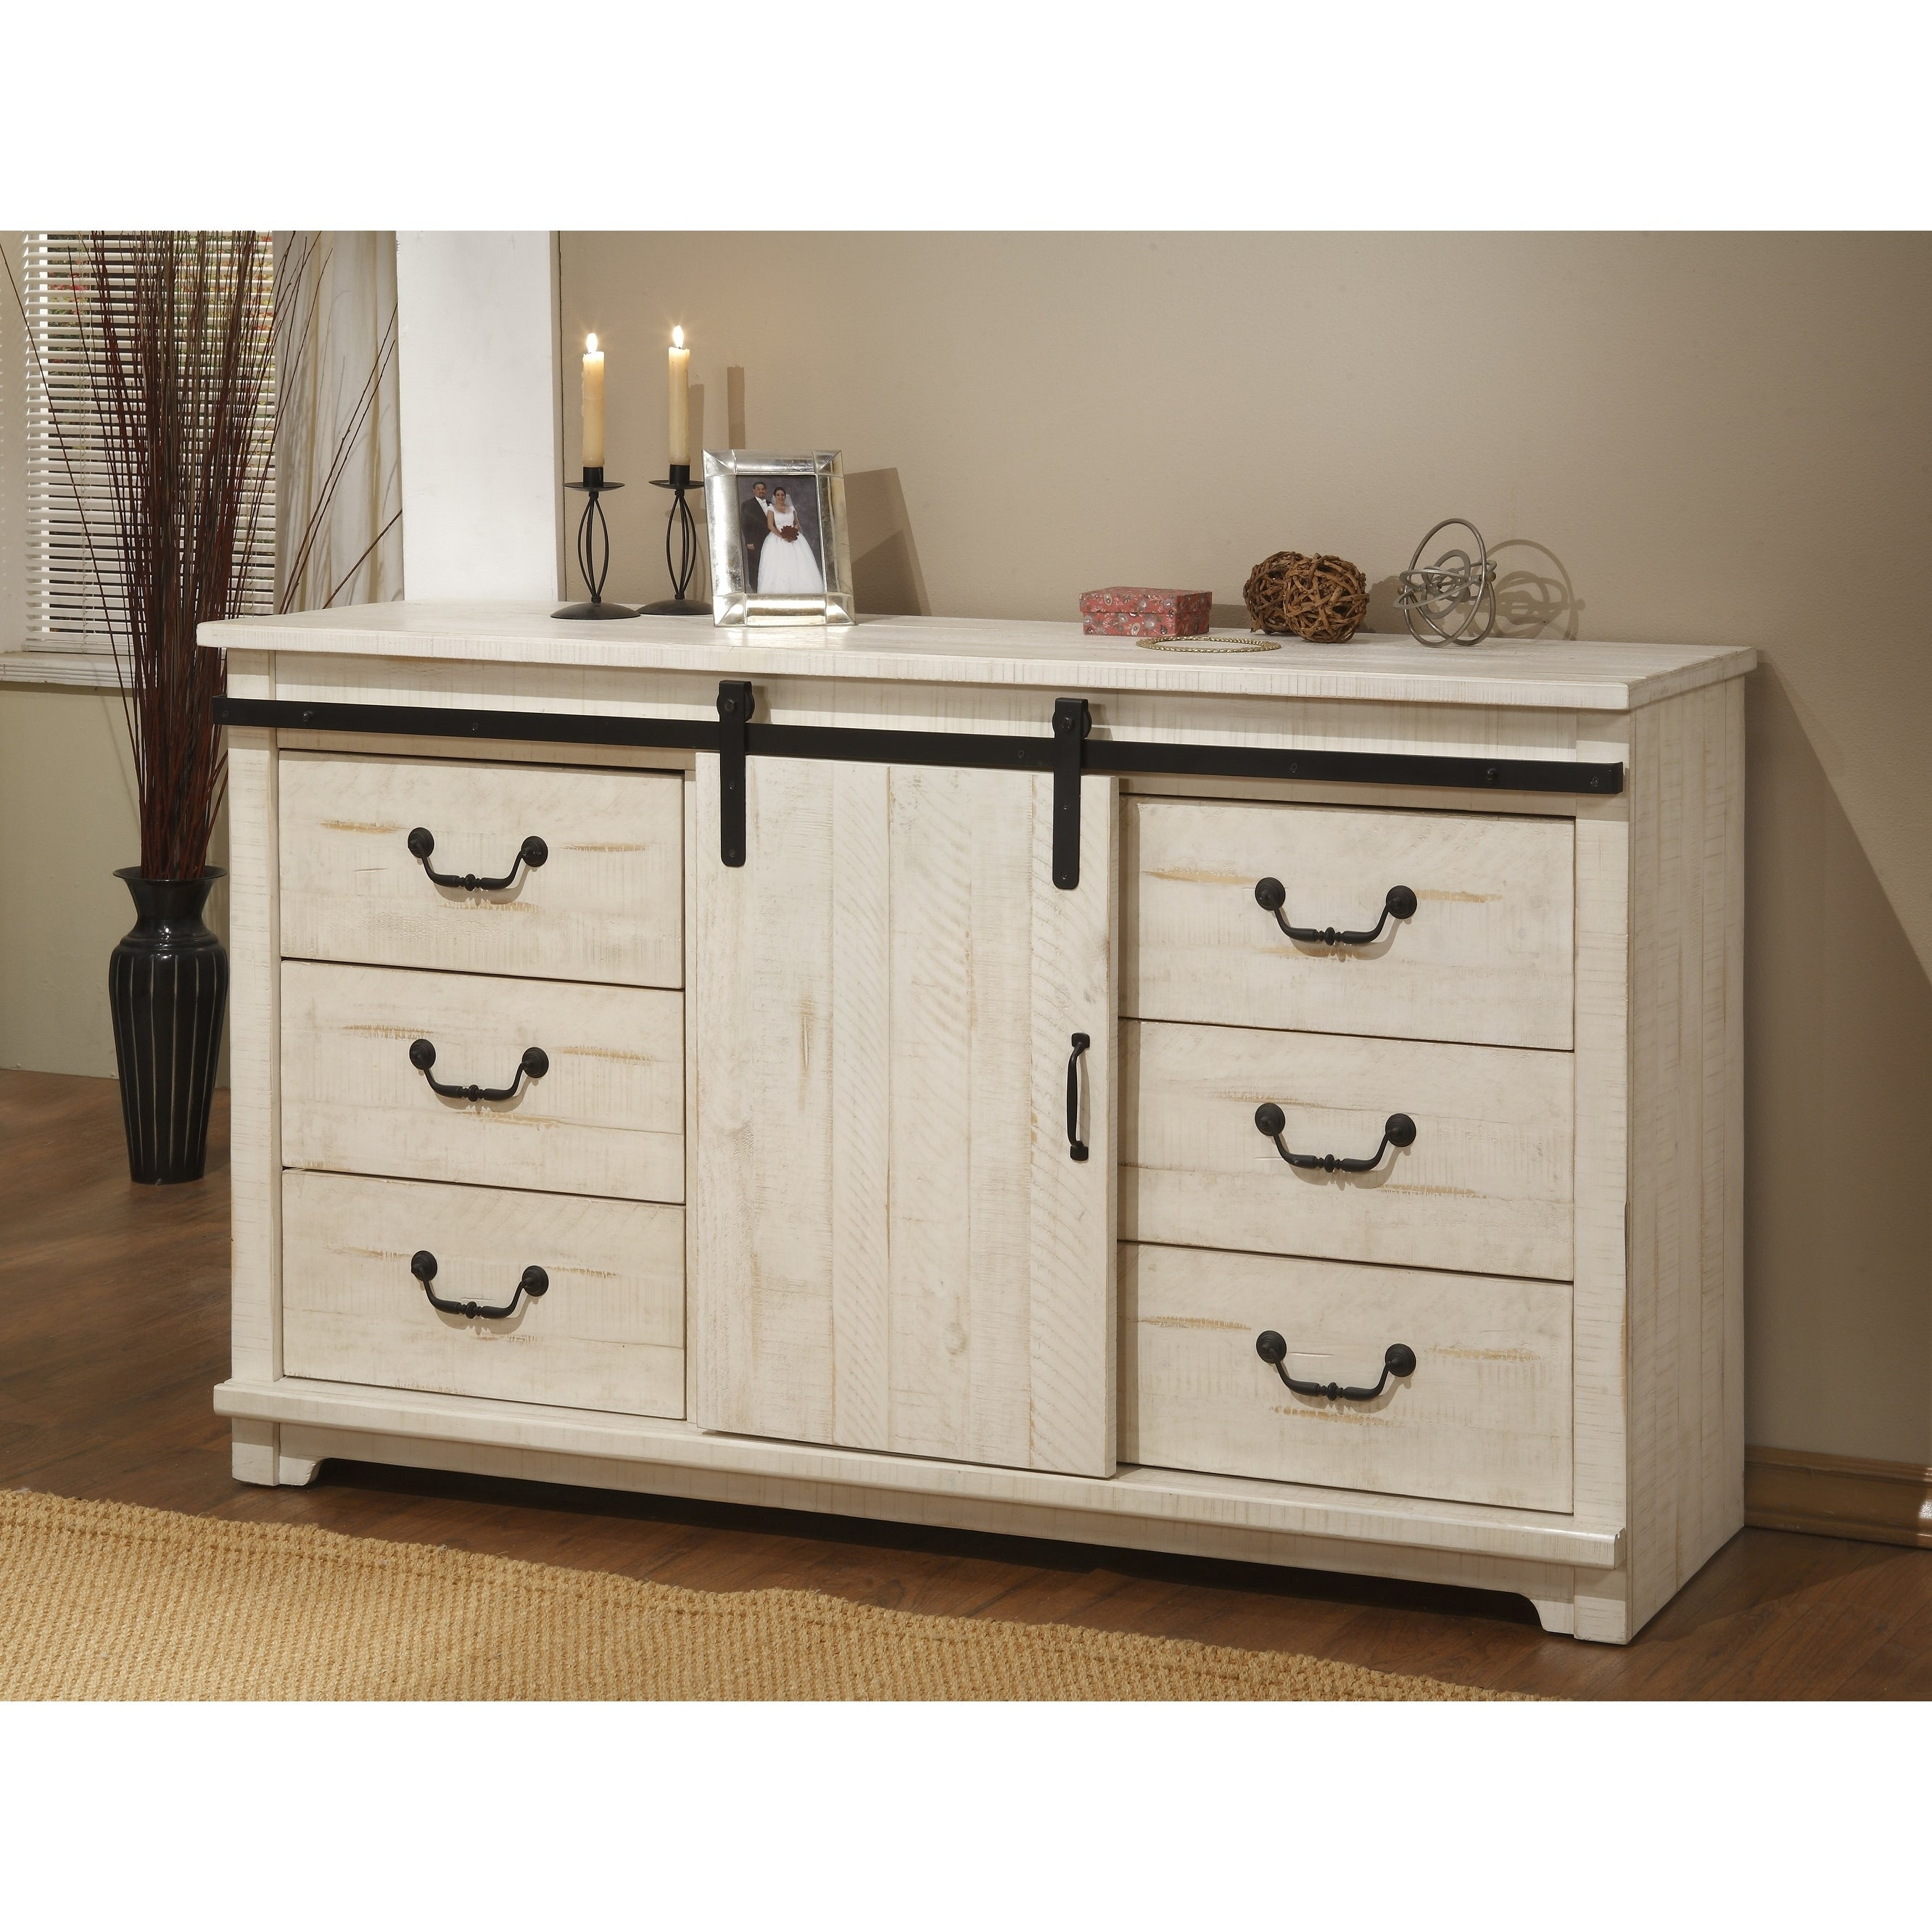 White Farmhouse Sliding Door Cabinet: Sliding Door Dresser